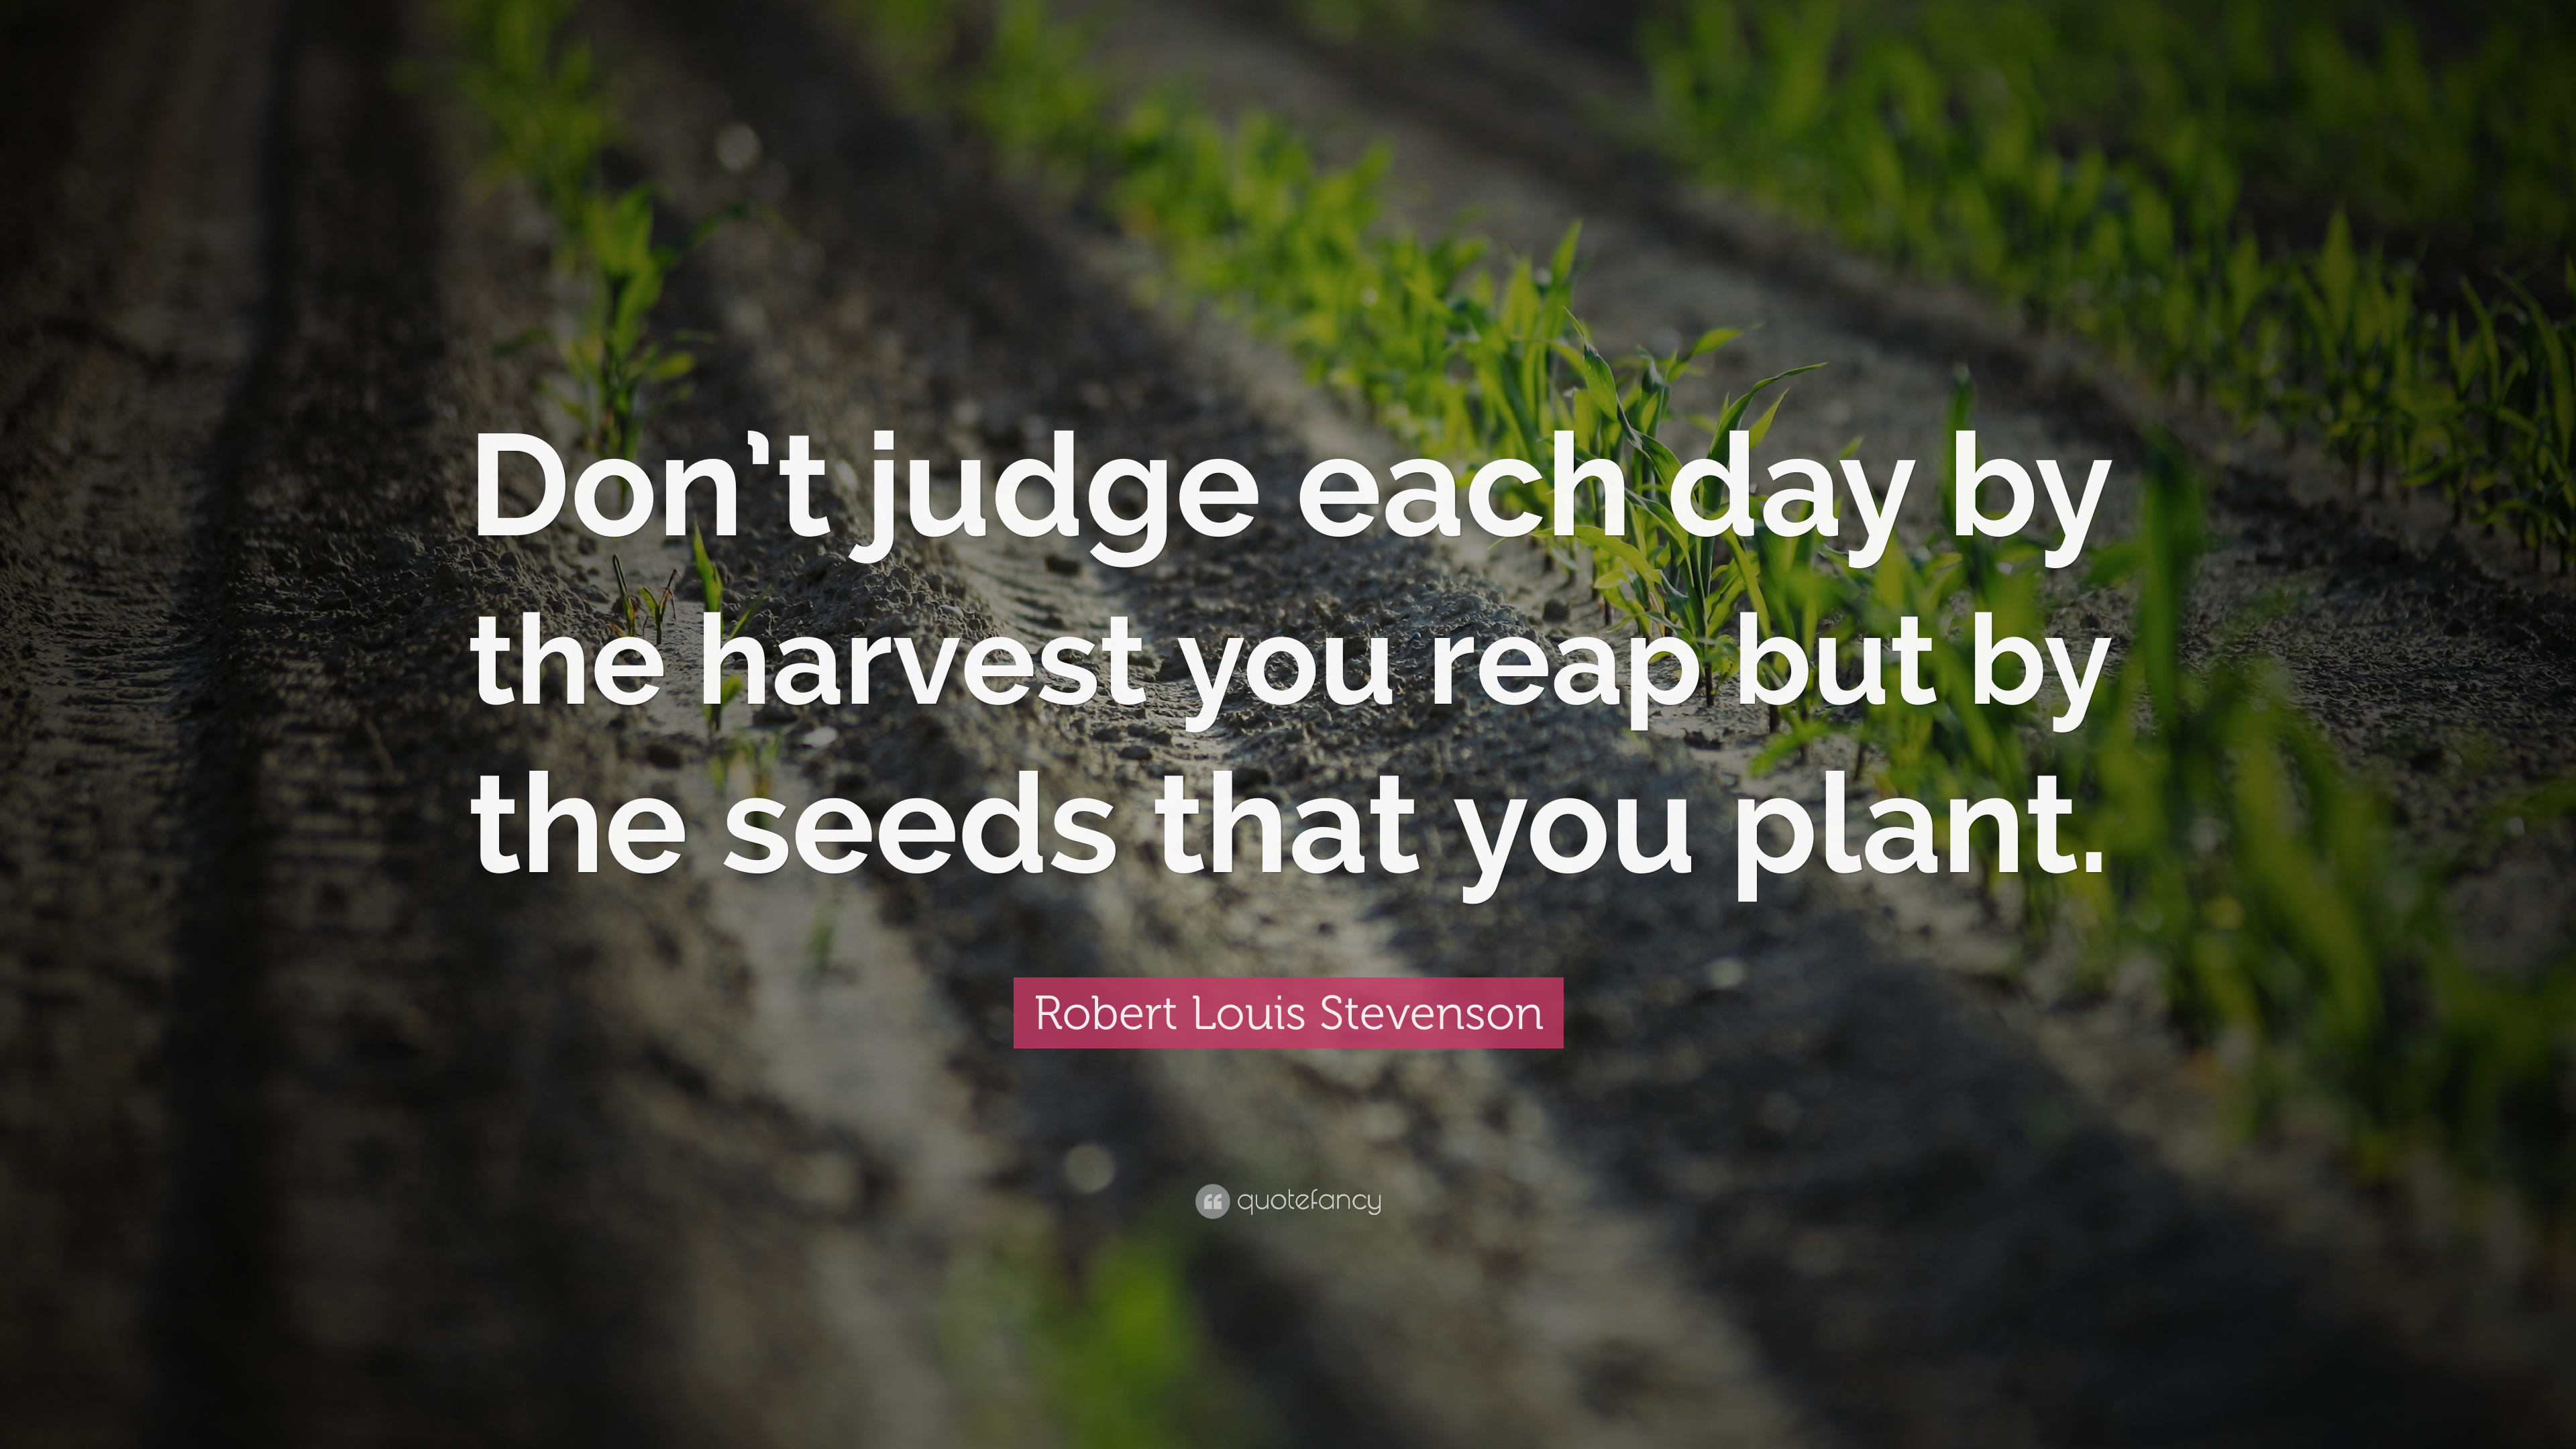 Don't judge each day by the harvest you reap but by the seeds that you plant. – Robert Louis Stevenson [3840X2160]